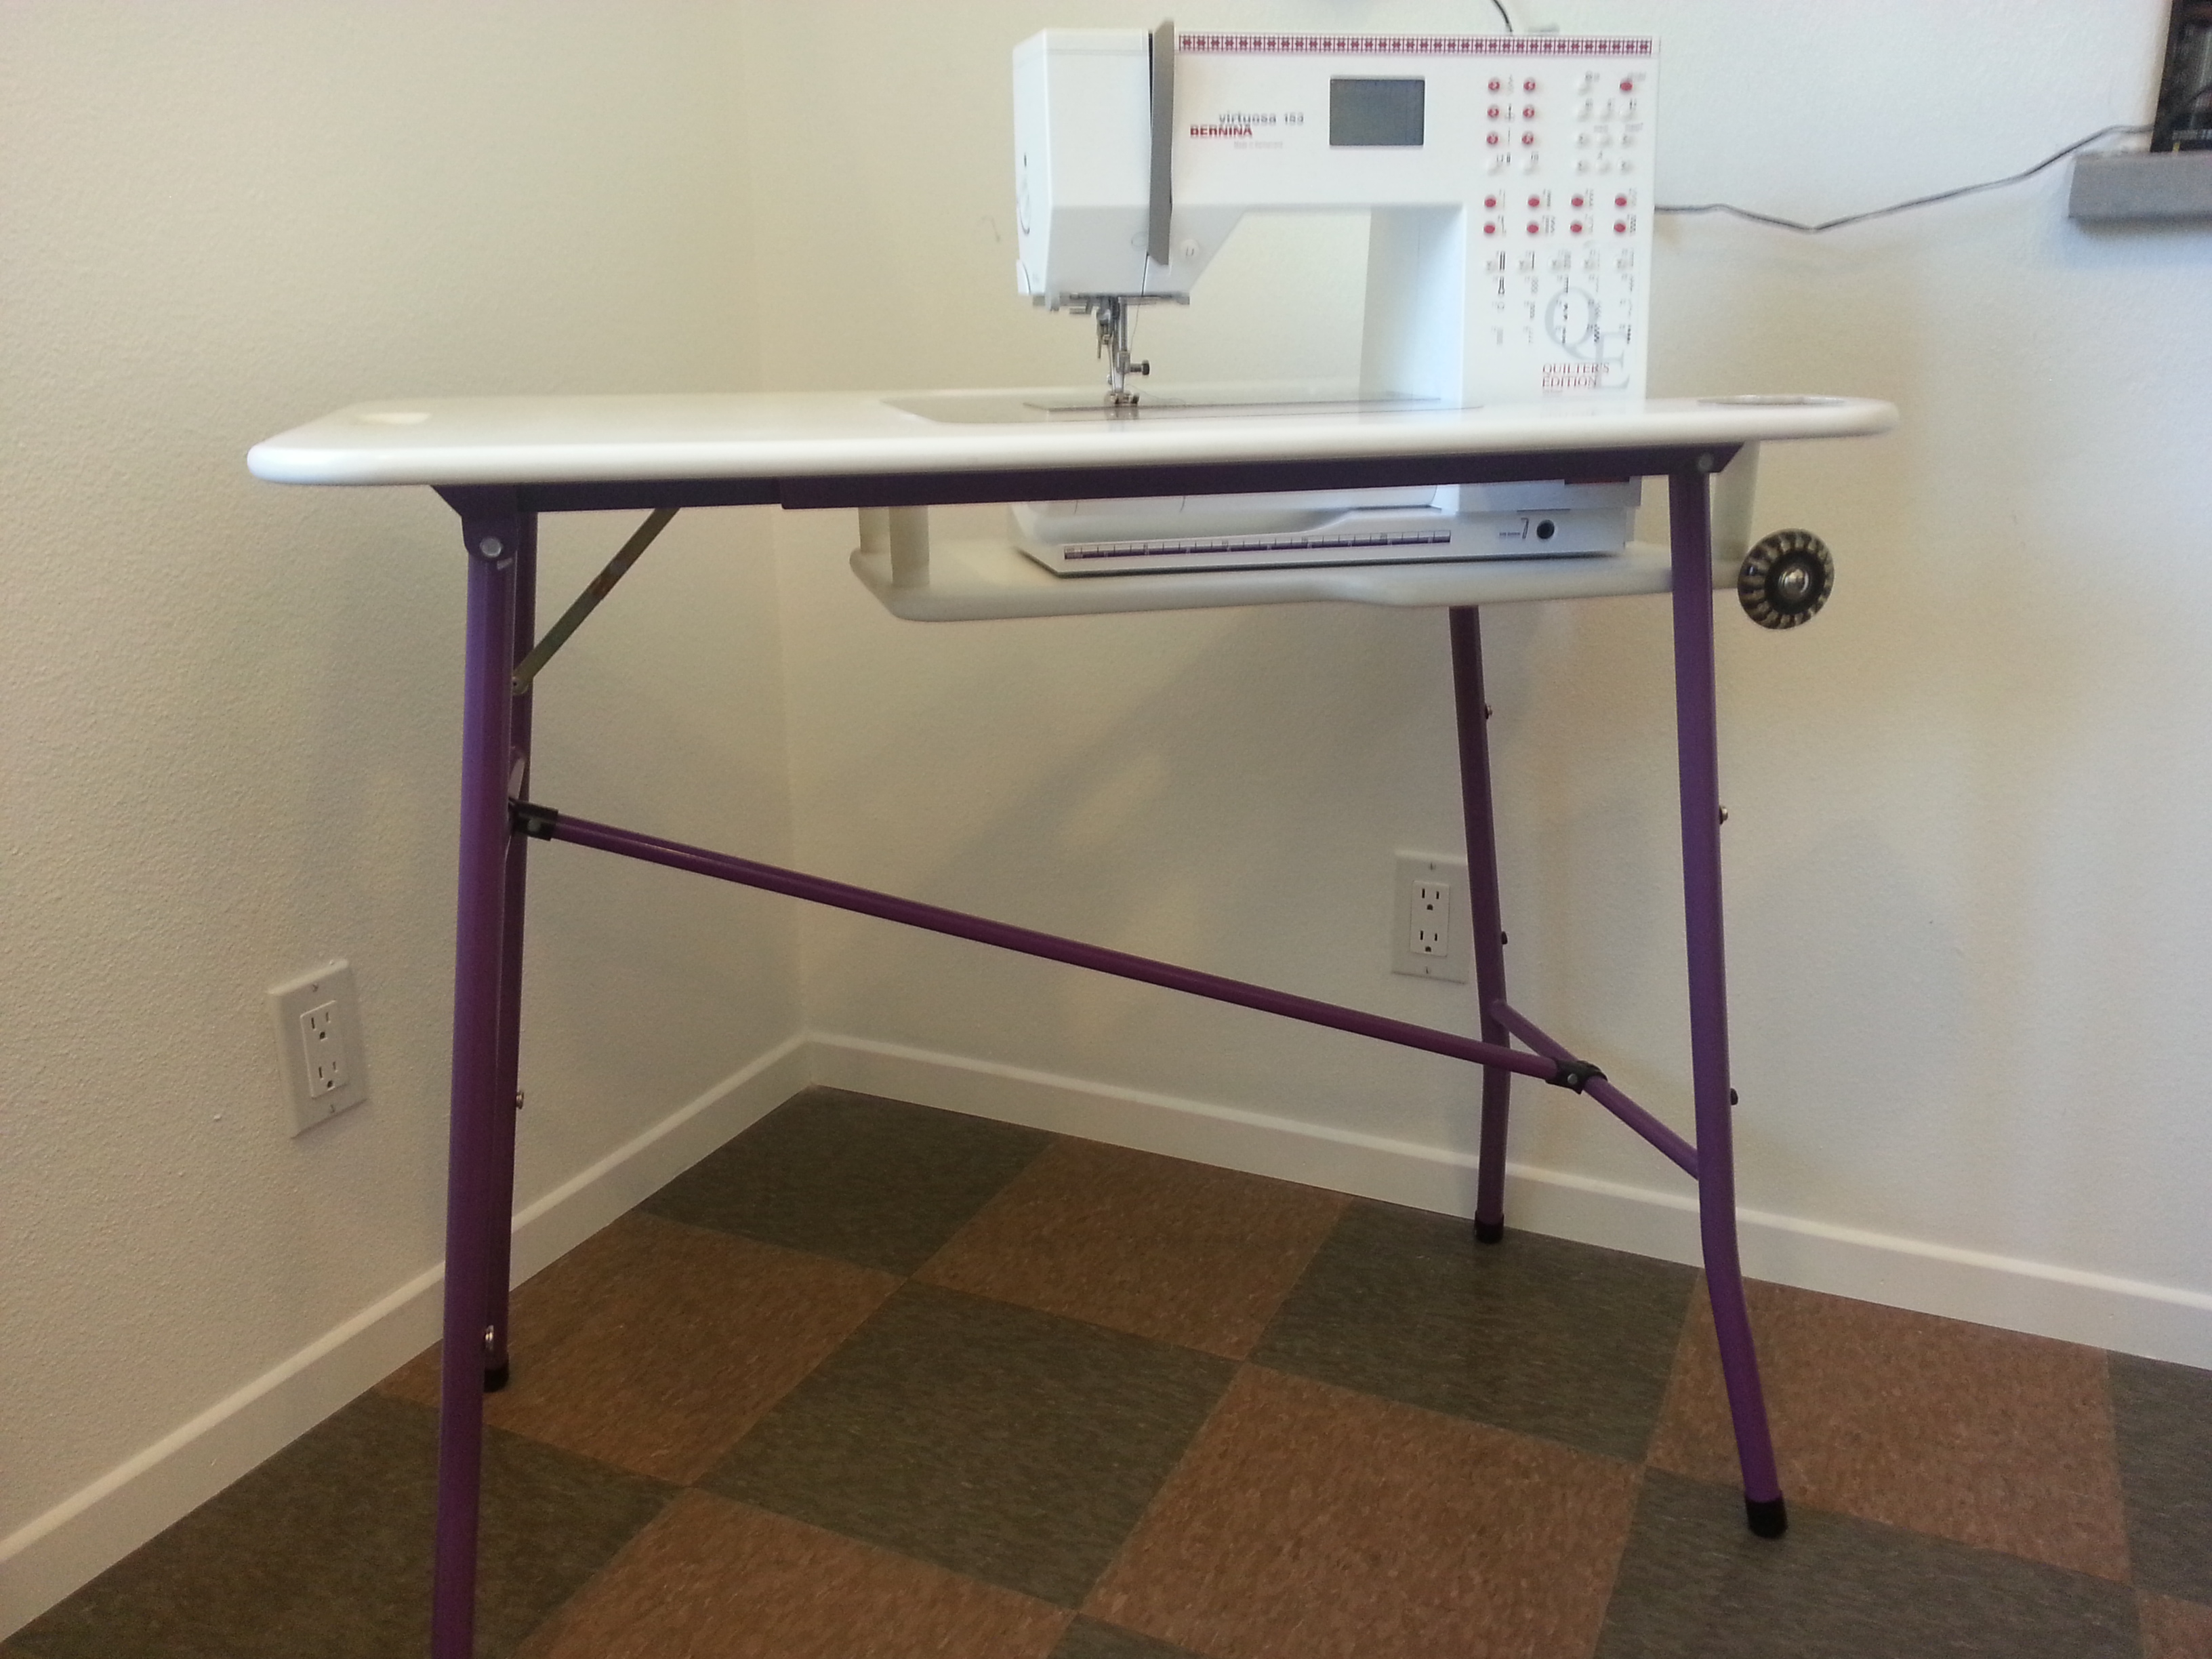 Portable Sewing Machine Table.Make Your Own Sewing Machine Extension Table